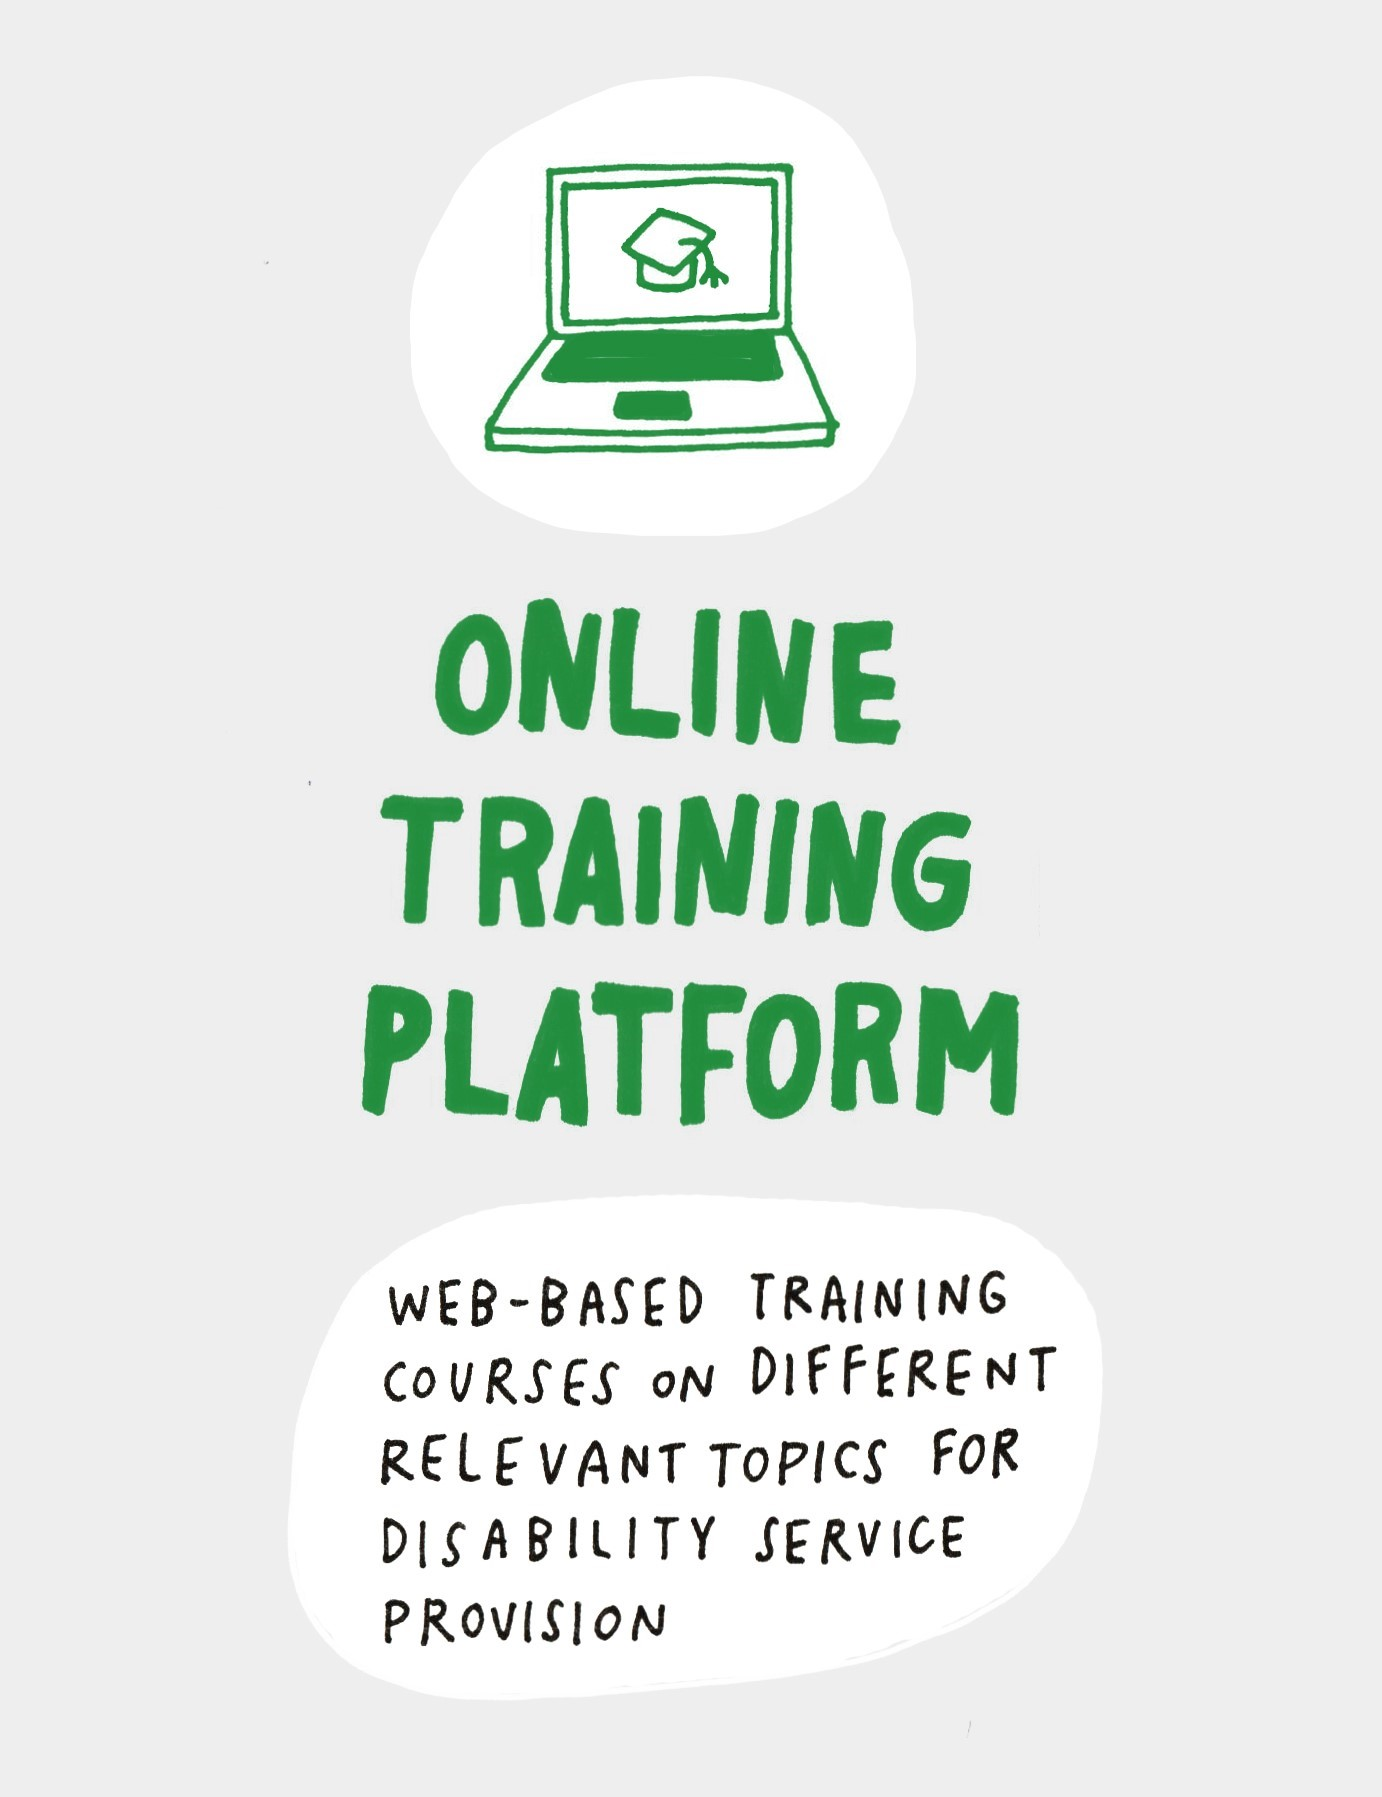 On-line training platform: web-based training courses on different relevant topics for disability service provision